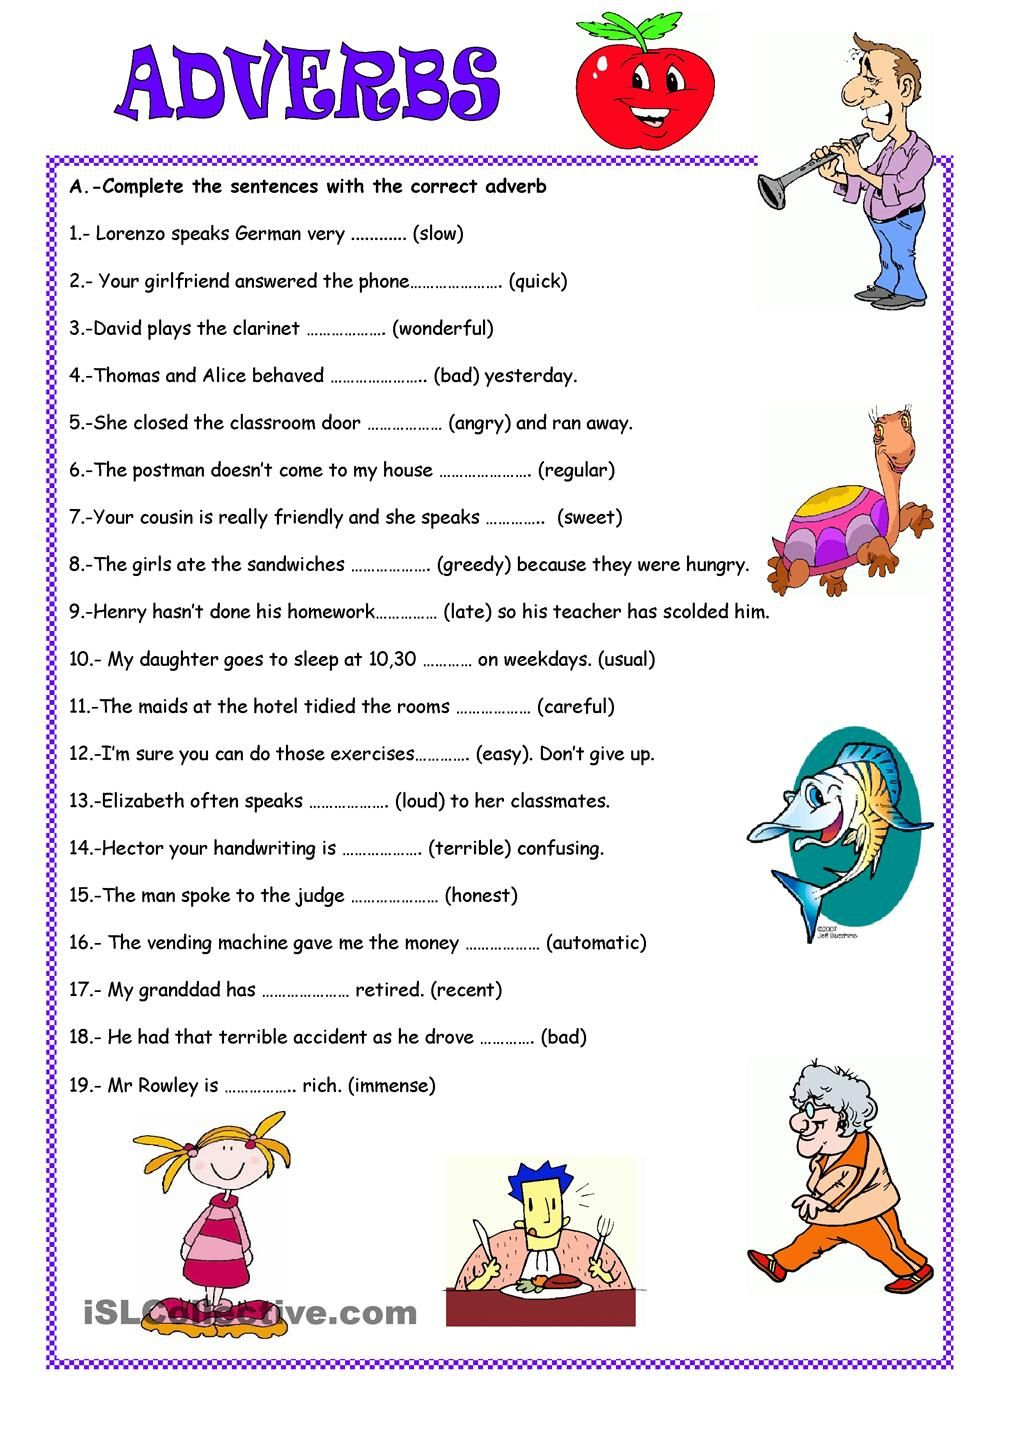 Adverbs Worksheet Google Search Adverbs Adverbs